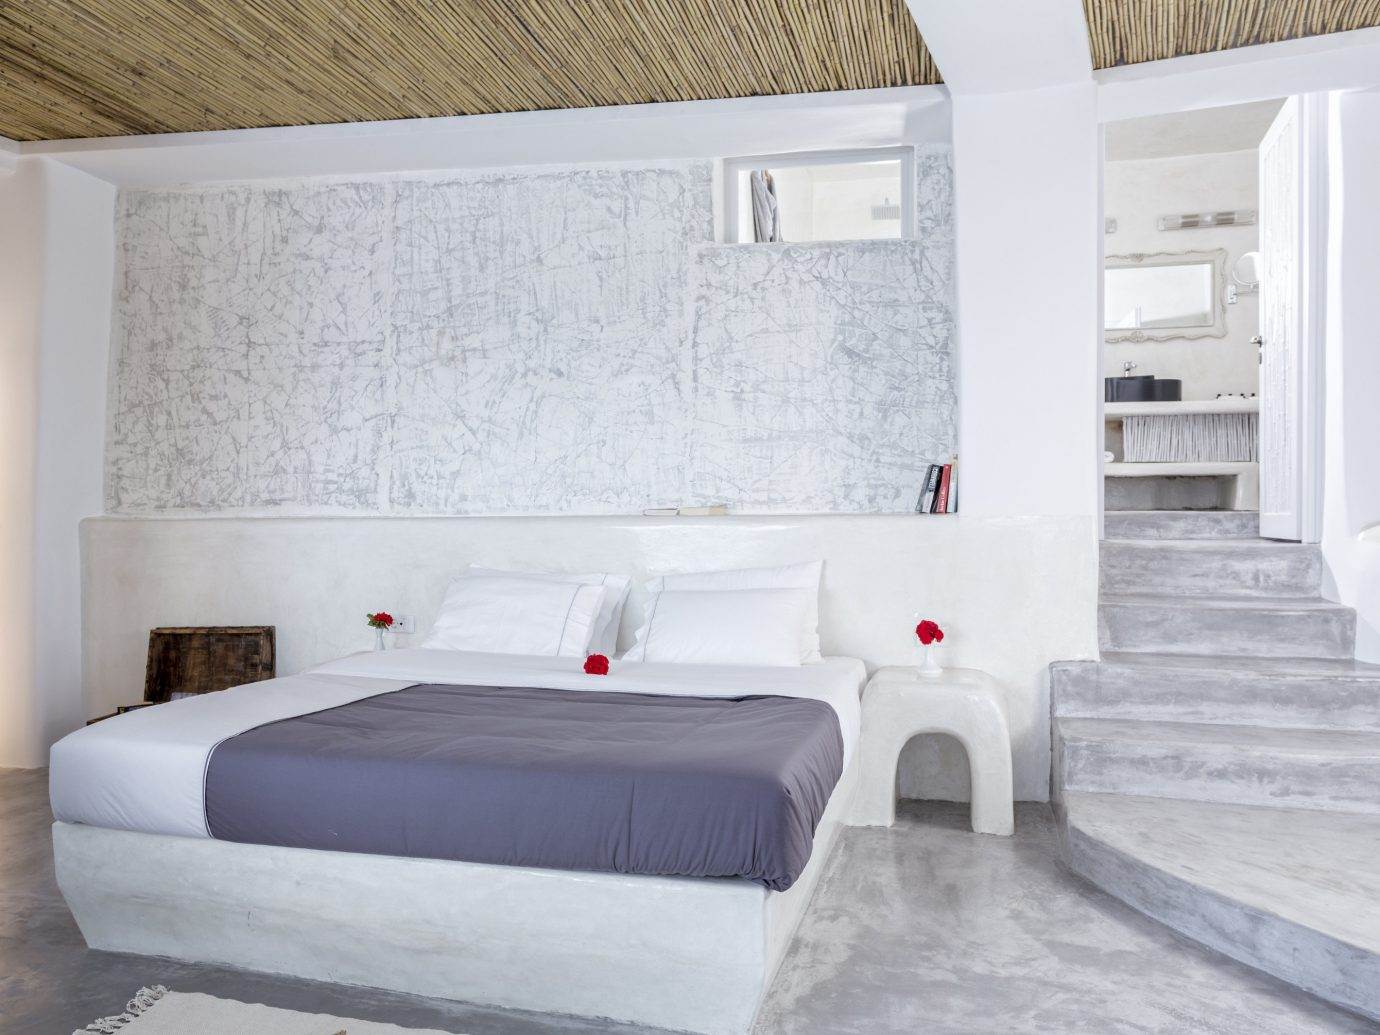 Greece Hotels Santorini indoor wall floor bed property room bed frame Architecture interior design Suite white ceiling Bedroom home furniture real estate hotel mattress interior designer house flooring estate daylighting boutique hotel loft